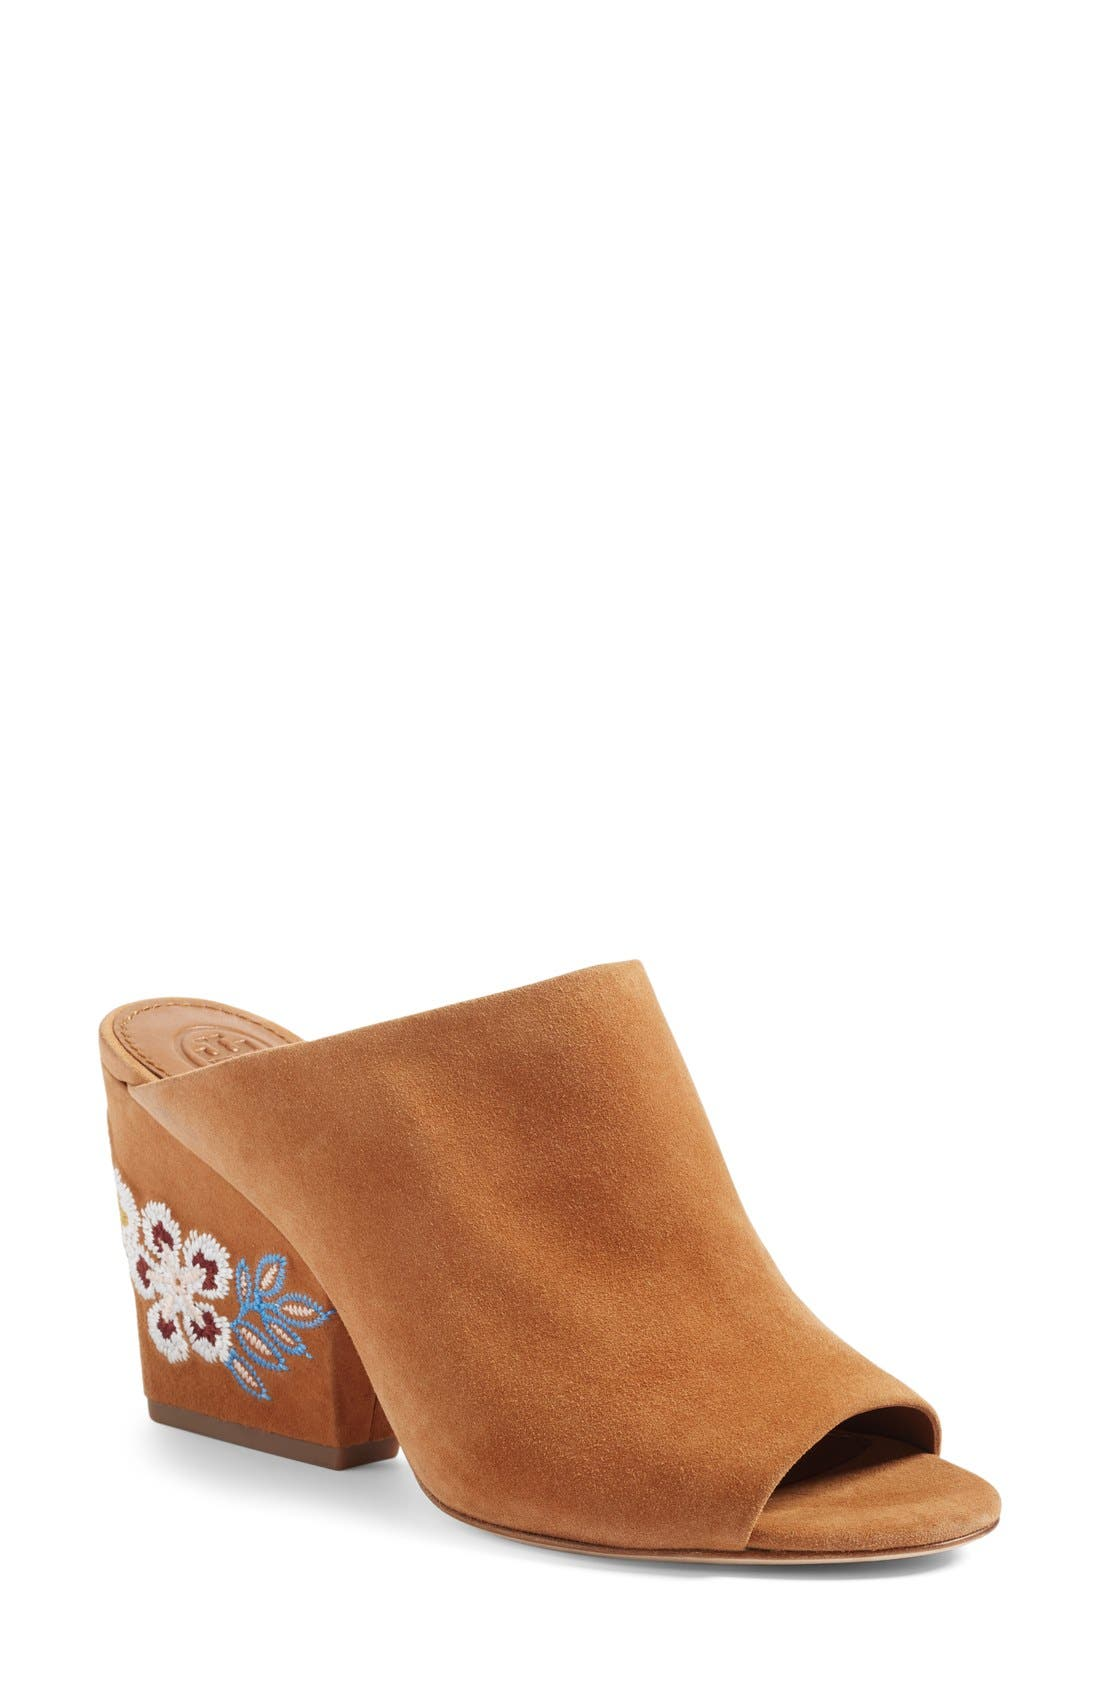 Main Image - Tory Burch Embroidered Floral Mule (Women)